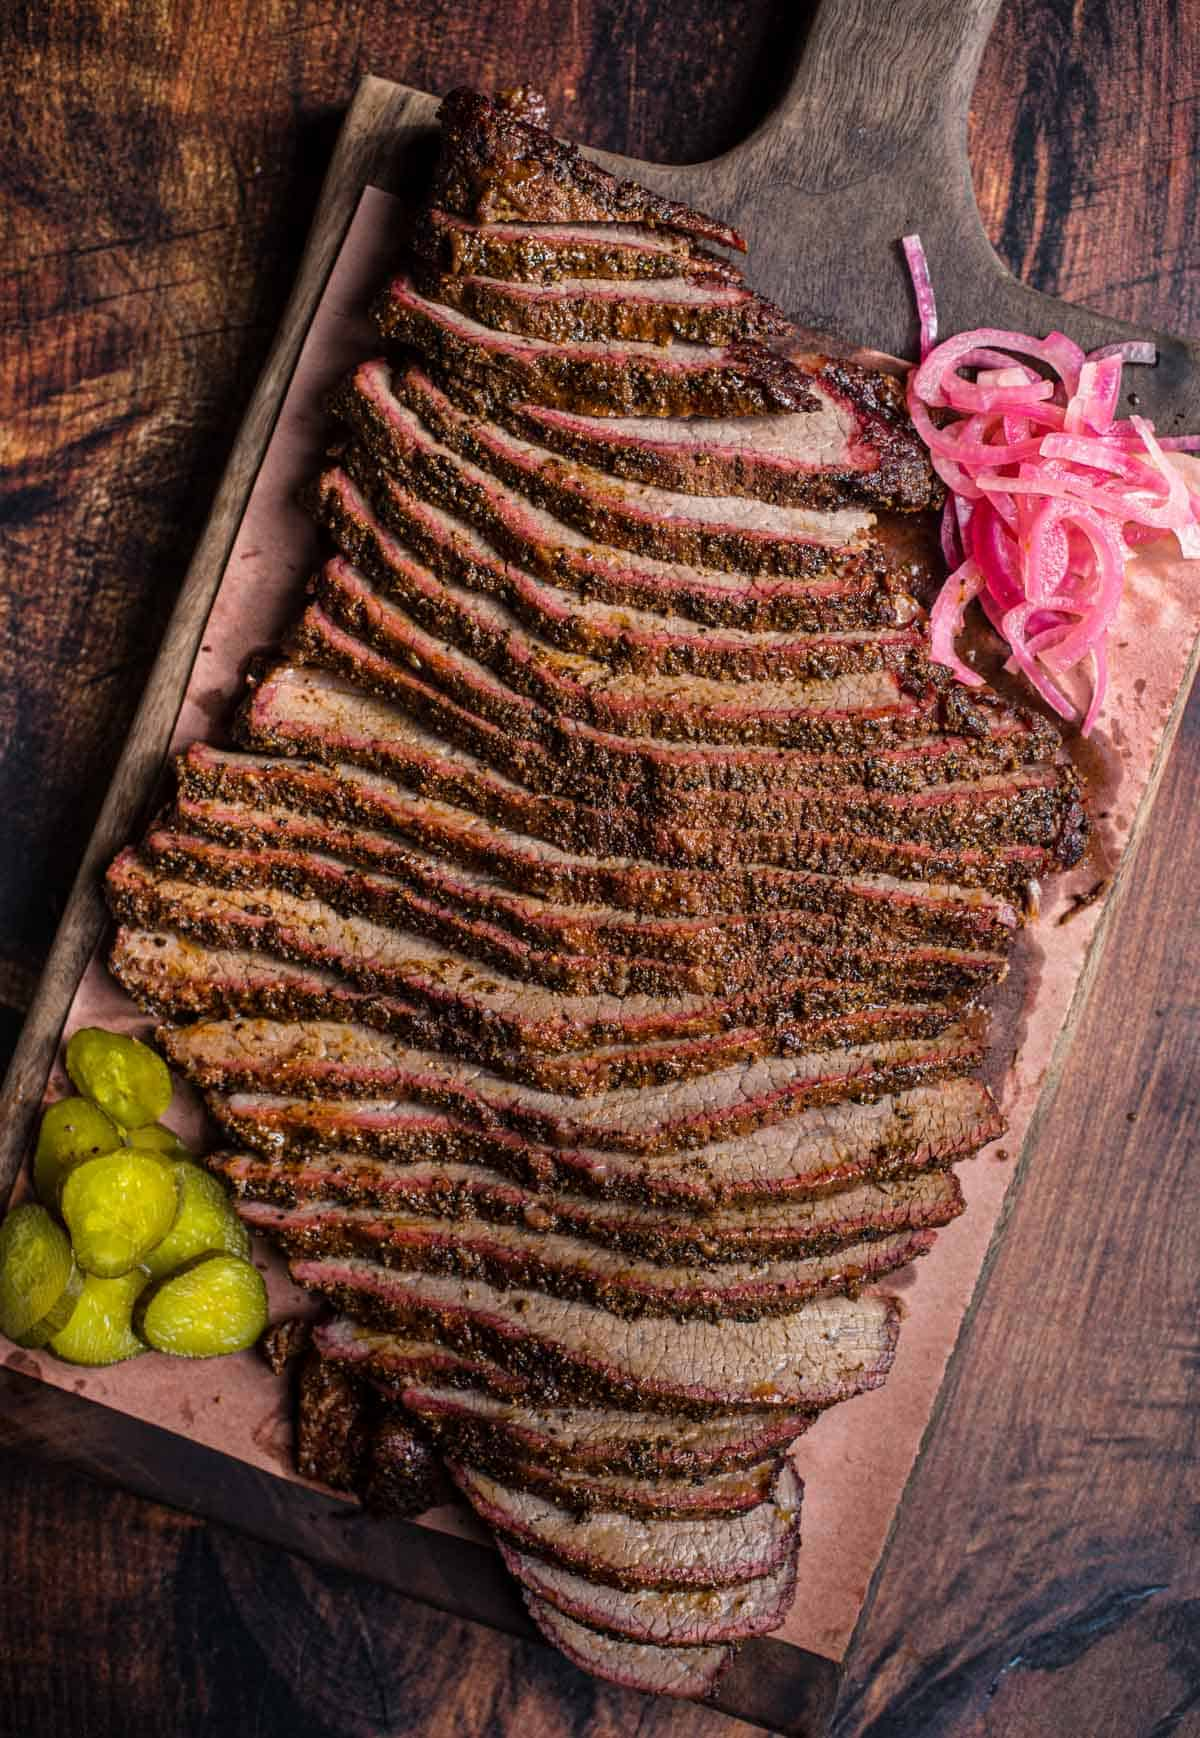 Smoked Brisket Flat slices on a cutting board